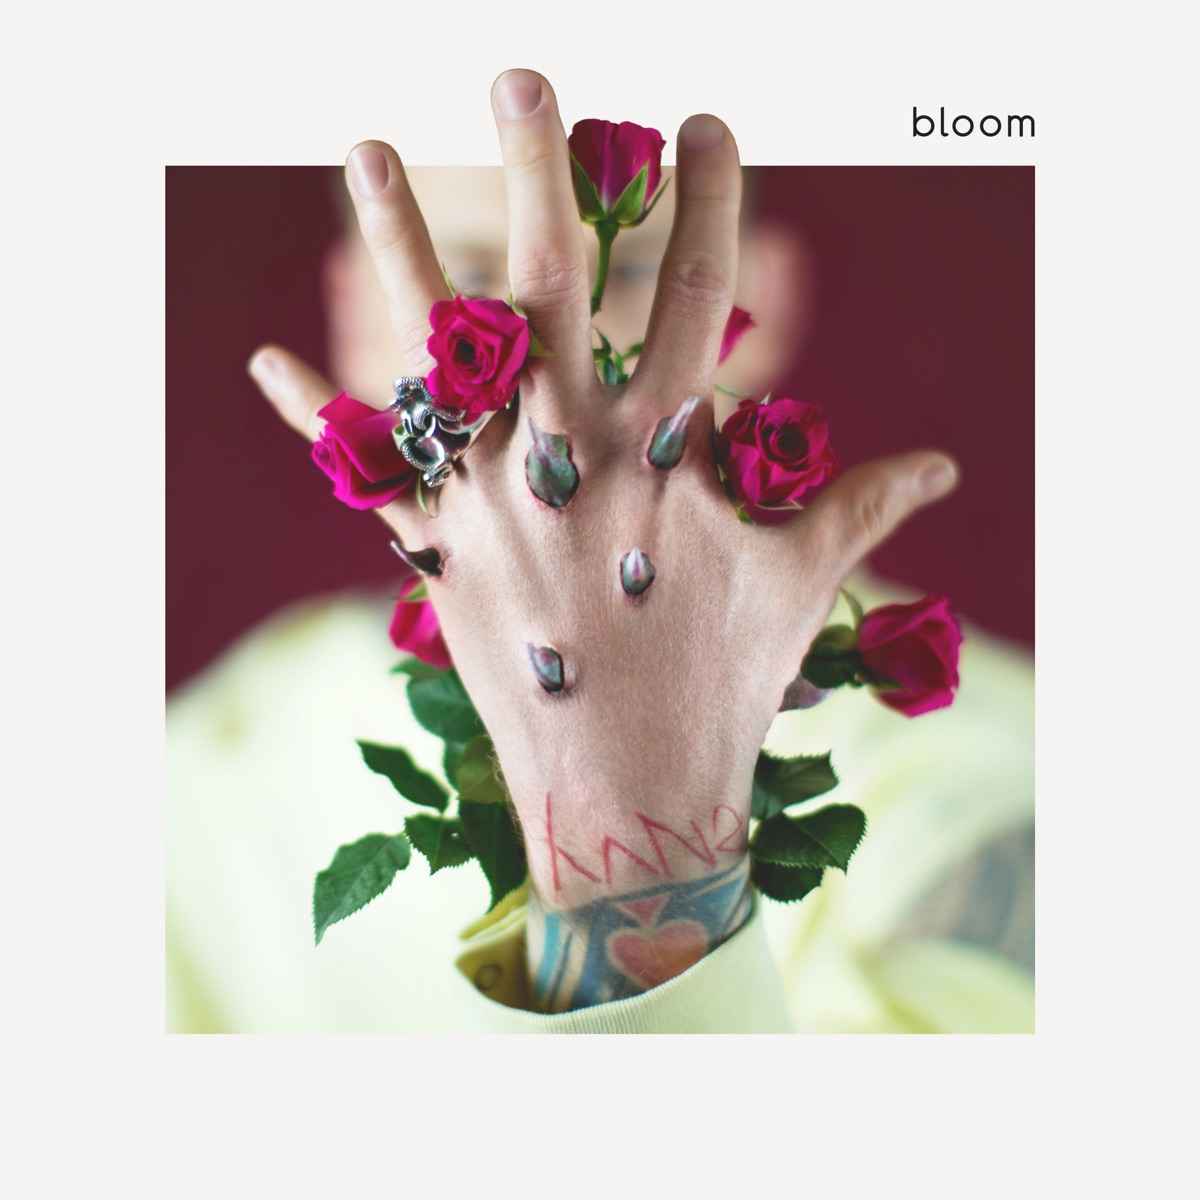 bloom Machine Gun Kelly CD cover